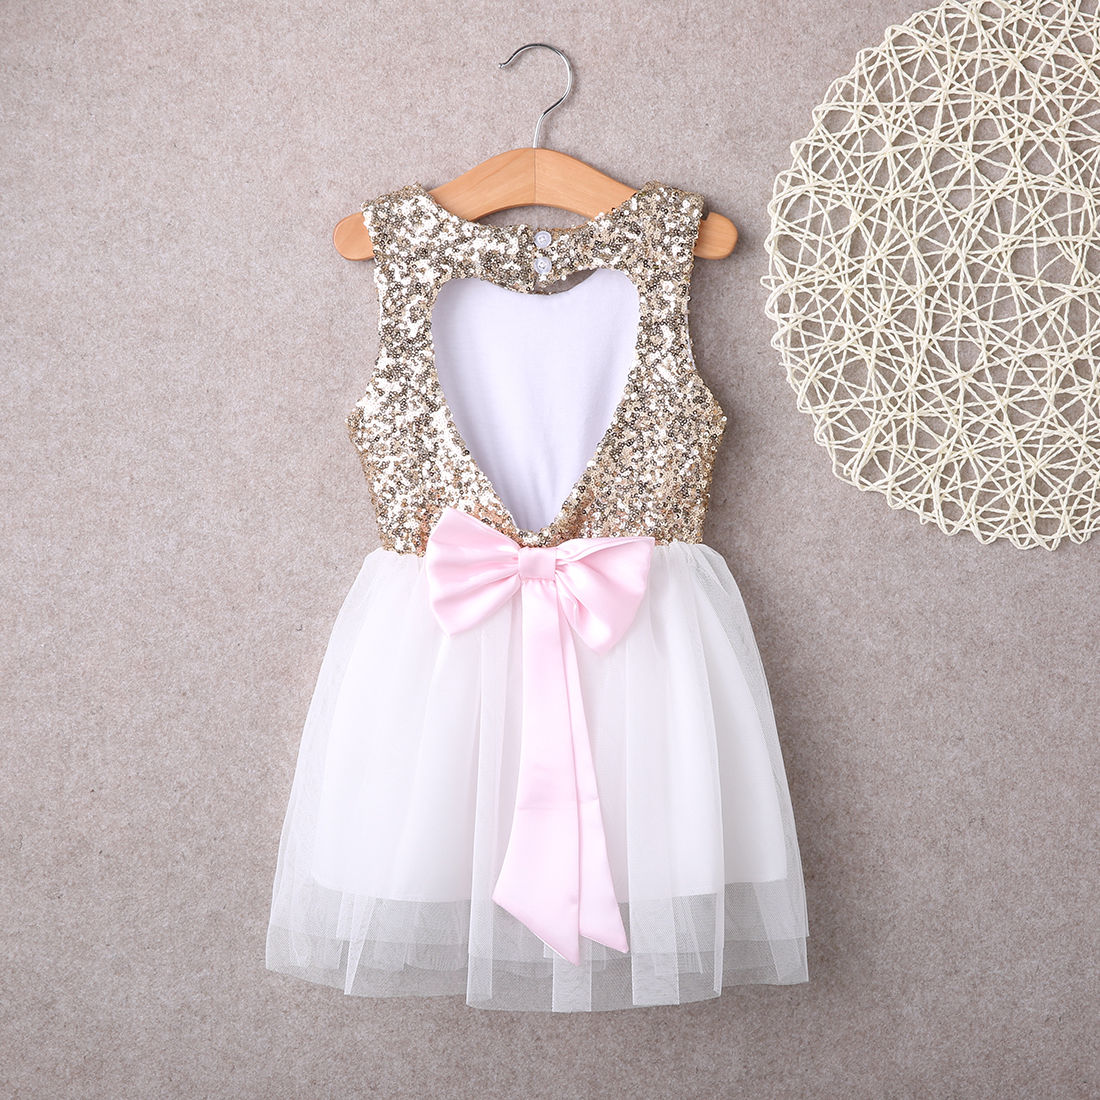 3-10Y Children Baby Girl Dress Clothing Sequins Party Gown Mini Ball Formal Love Backless Princess Bow Backless Gown Dress Girl 2016 new girl embroidery princess sleeveless dress kids baby children s party ball gown vestido de festa for 3 10y